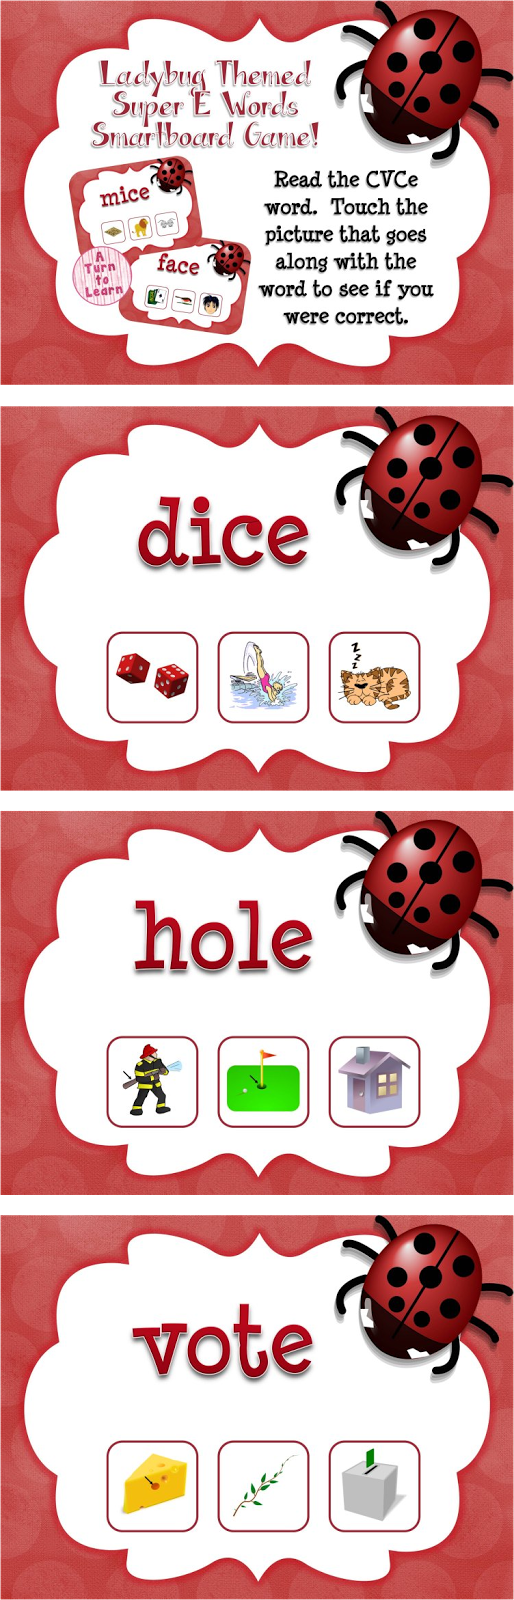 Ladybug Themed CVCe Words Game for Smartboard or Promethean Board!